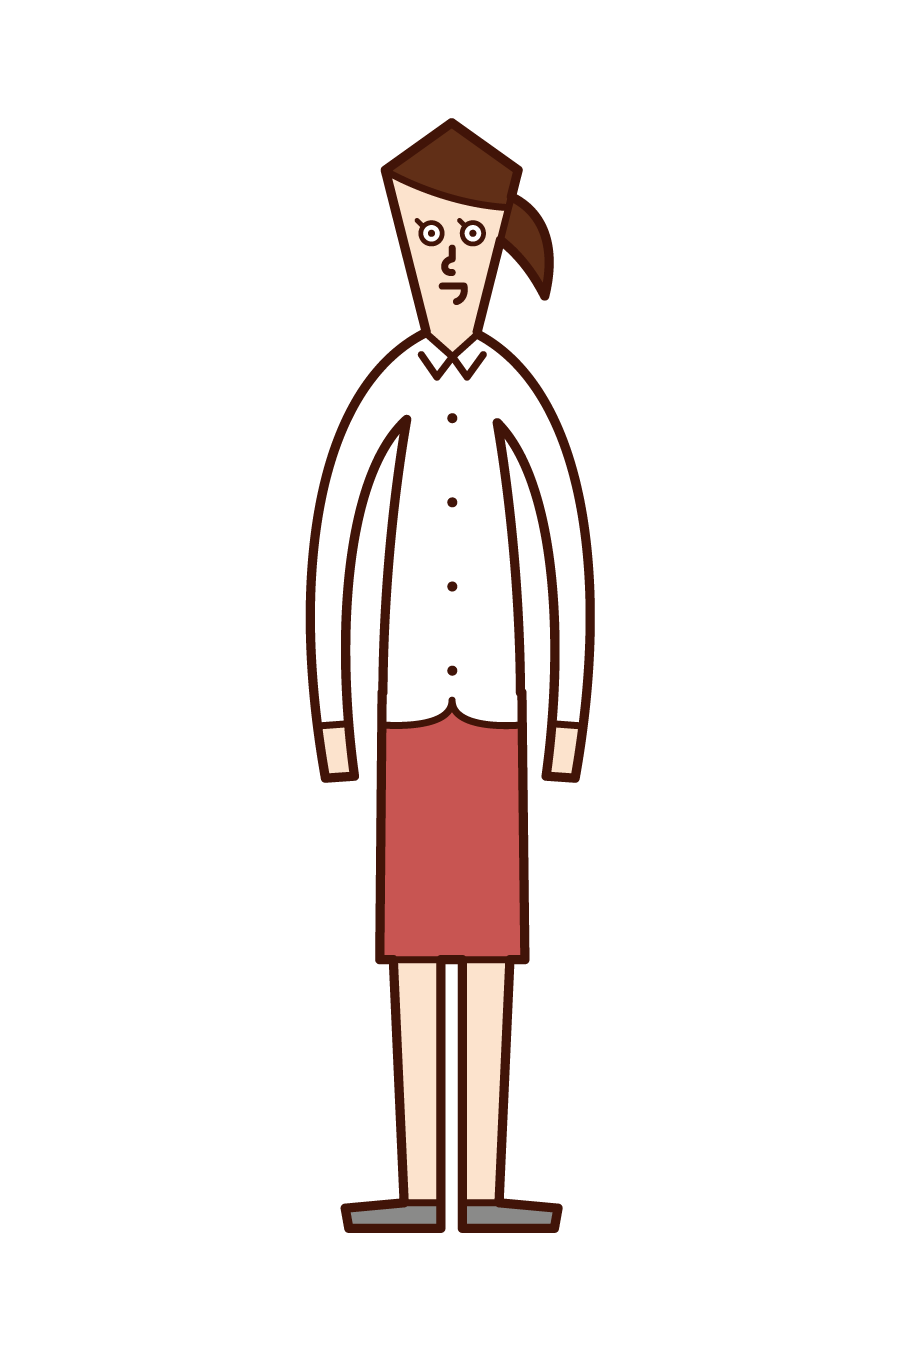 Illustration of a woman in a shirt